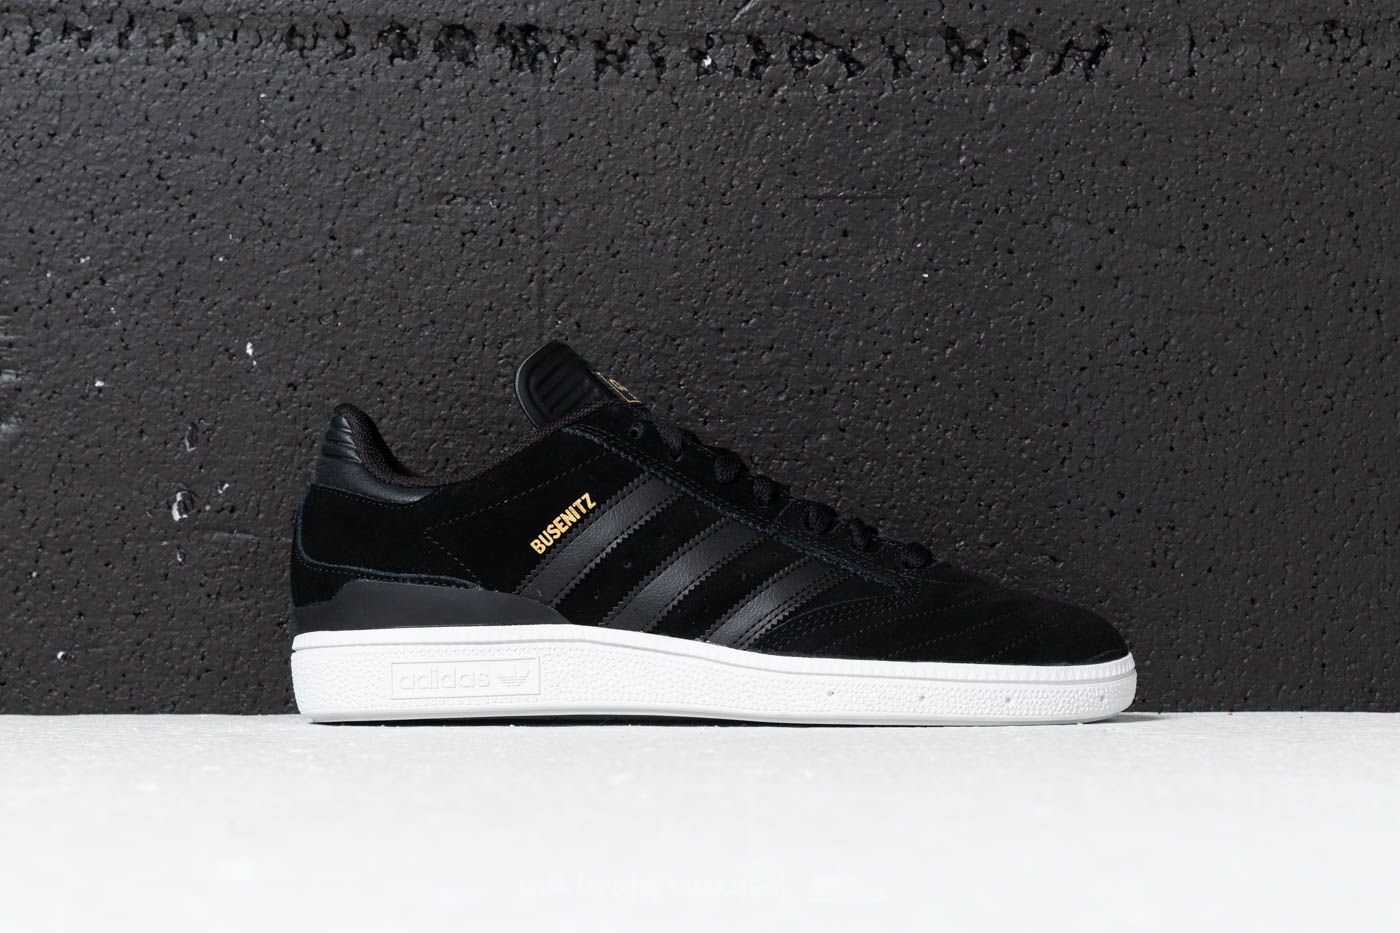 adidas Busenitz Core Black  Core Black  Ftw White at a great price 90 € 8c0f8d246